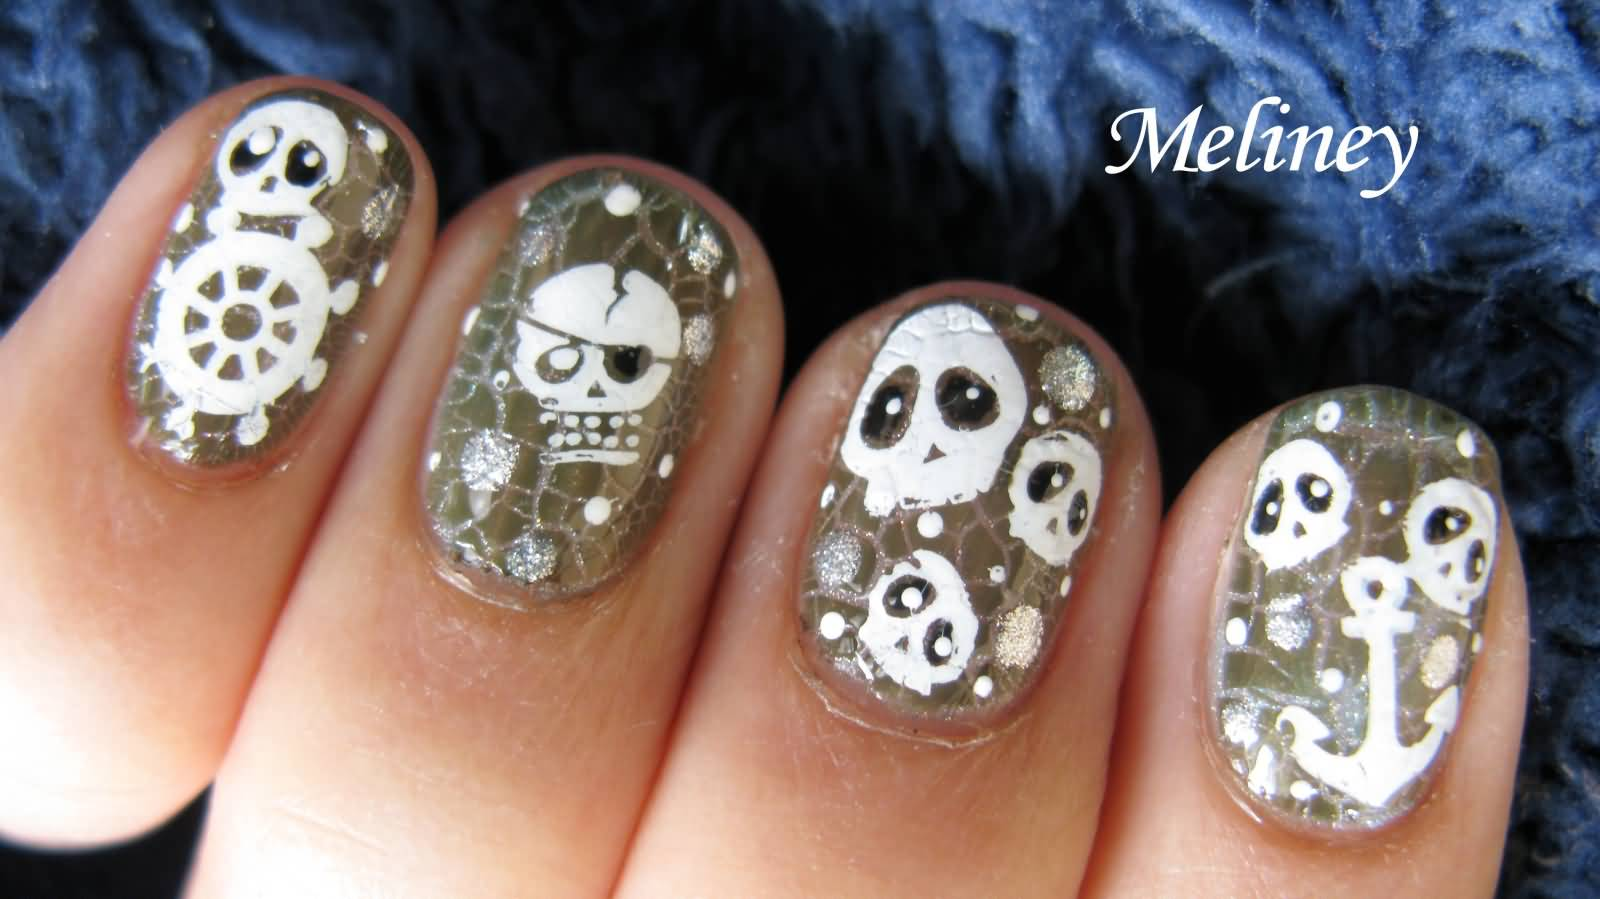 Crackle nails with pirate skulls nail art tutorial prinsesfo Choice Image